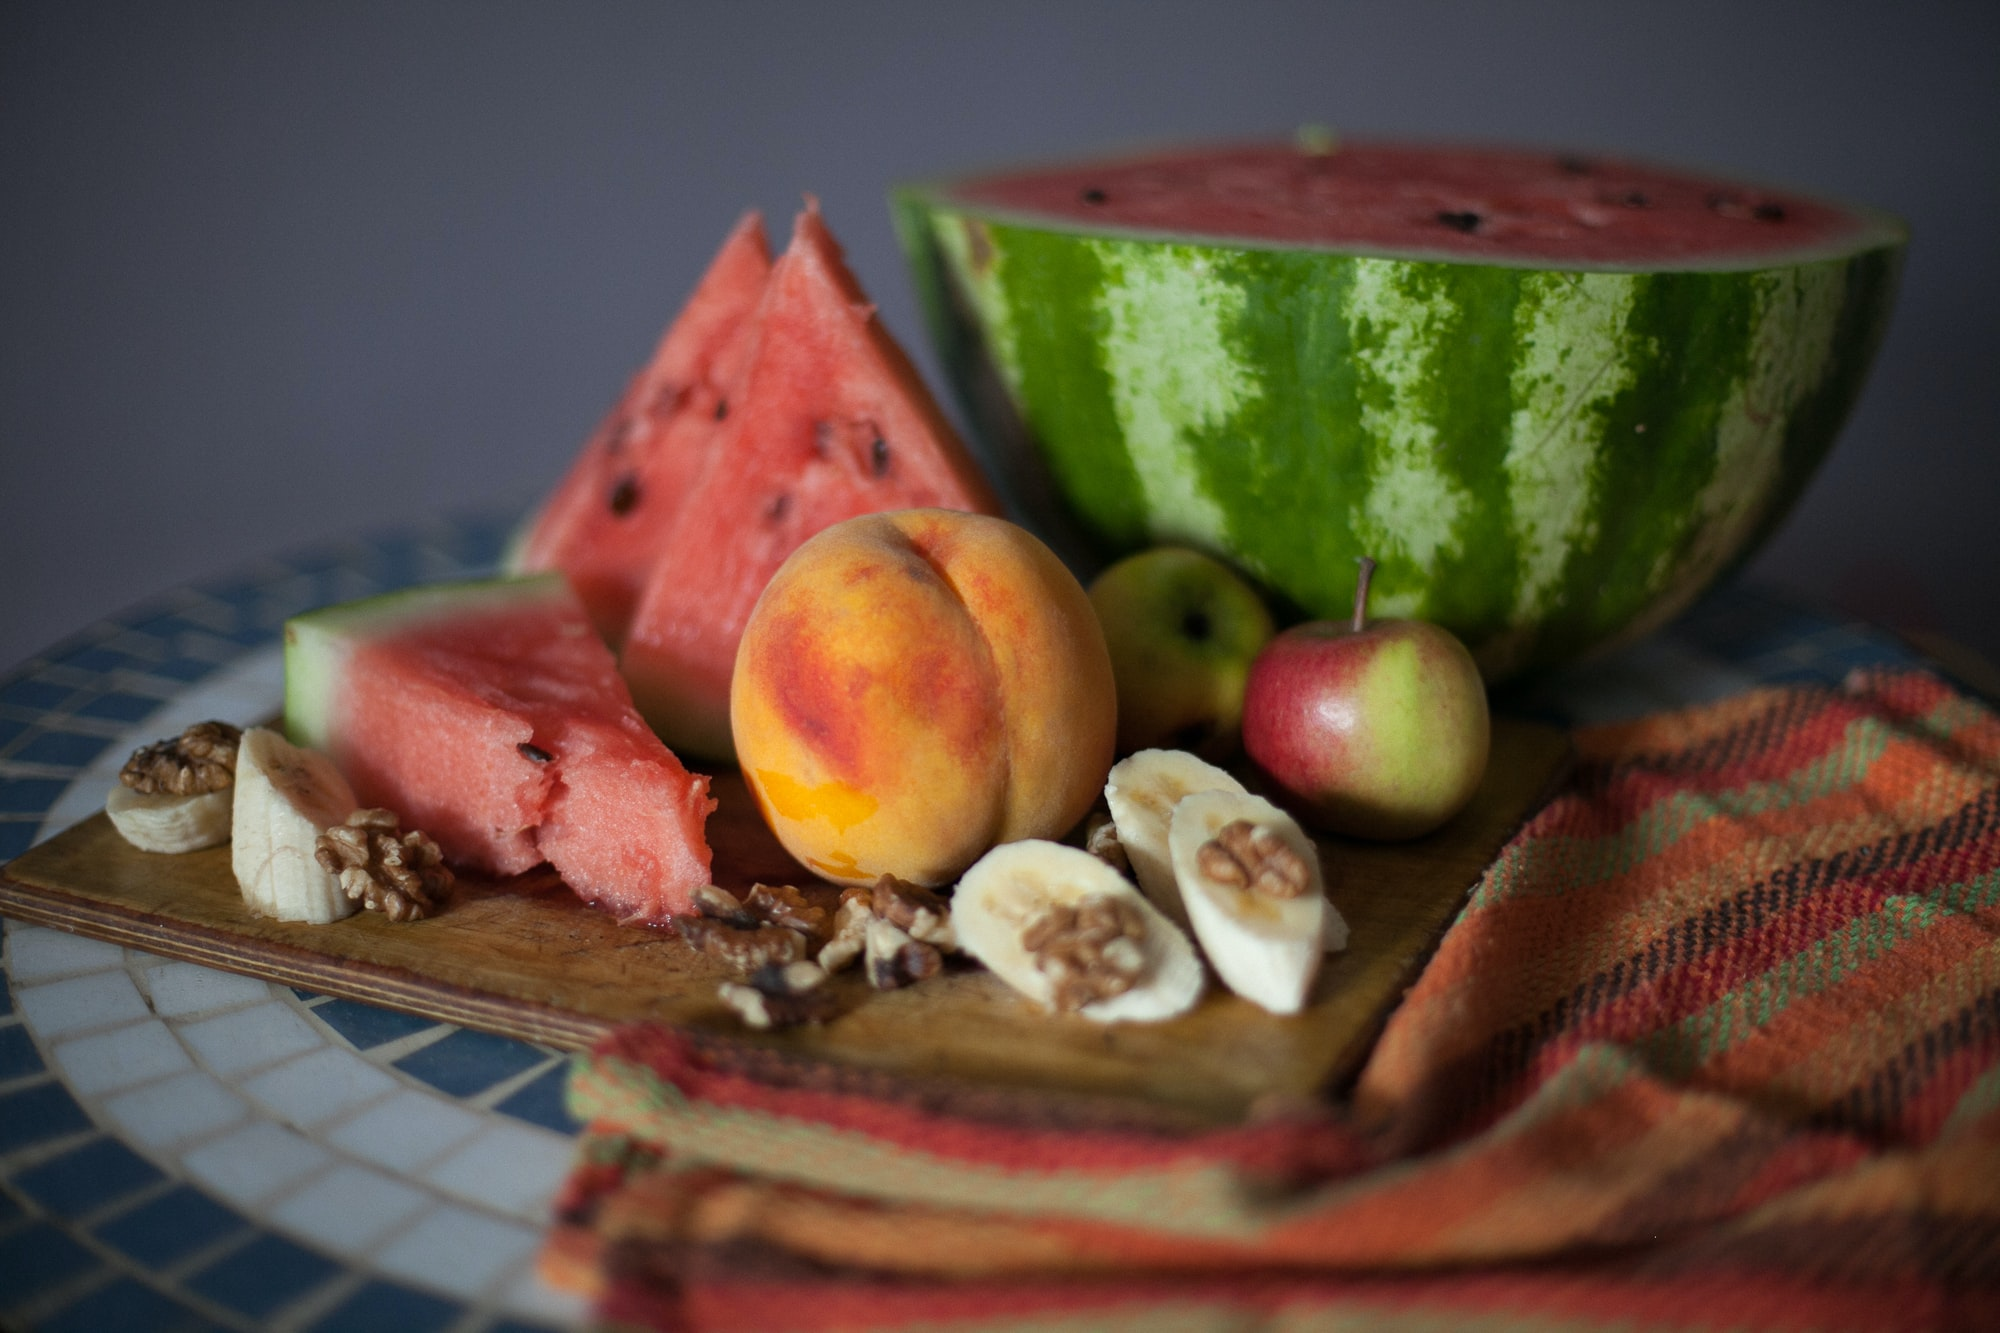 Sliced watermelon, banana, peaches, fruit, and nuts on a cutting board